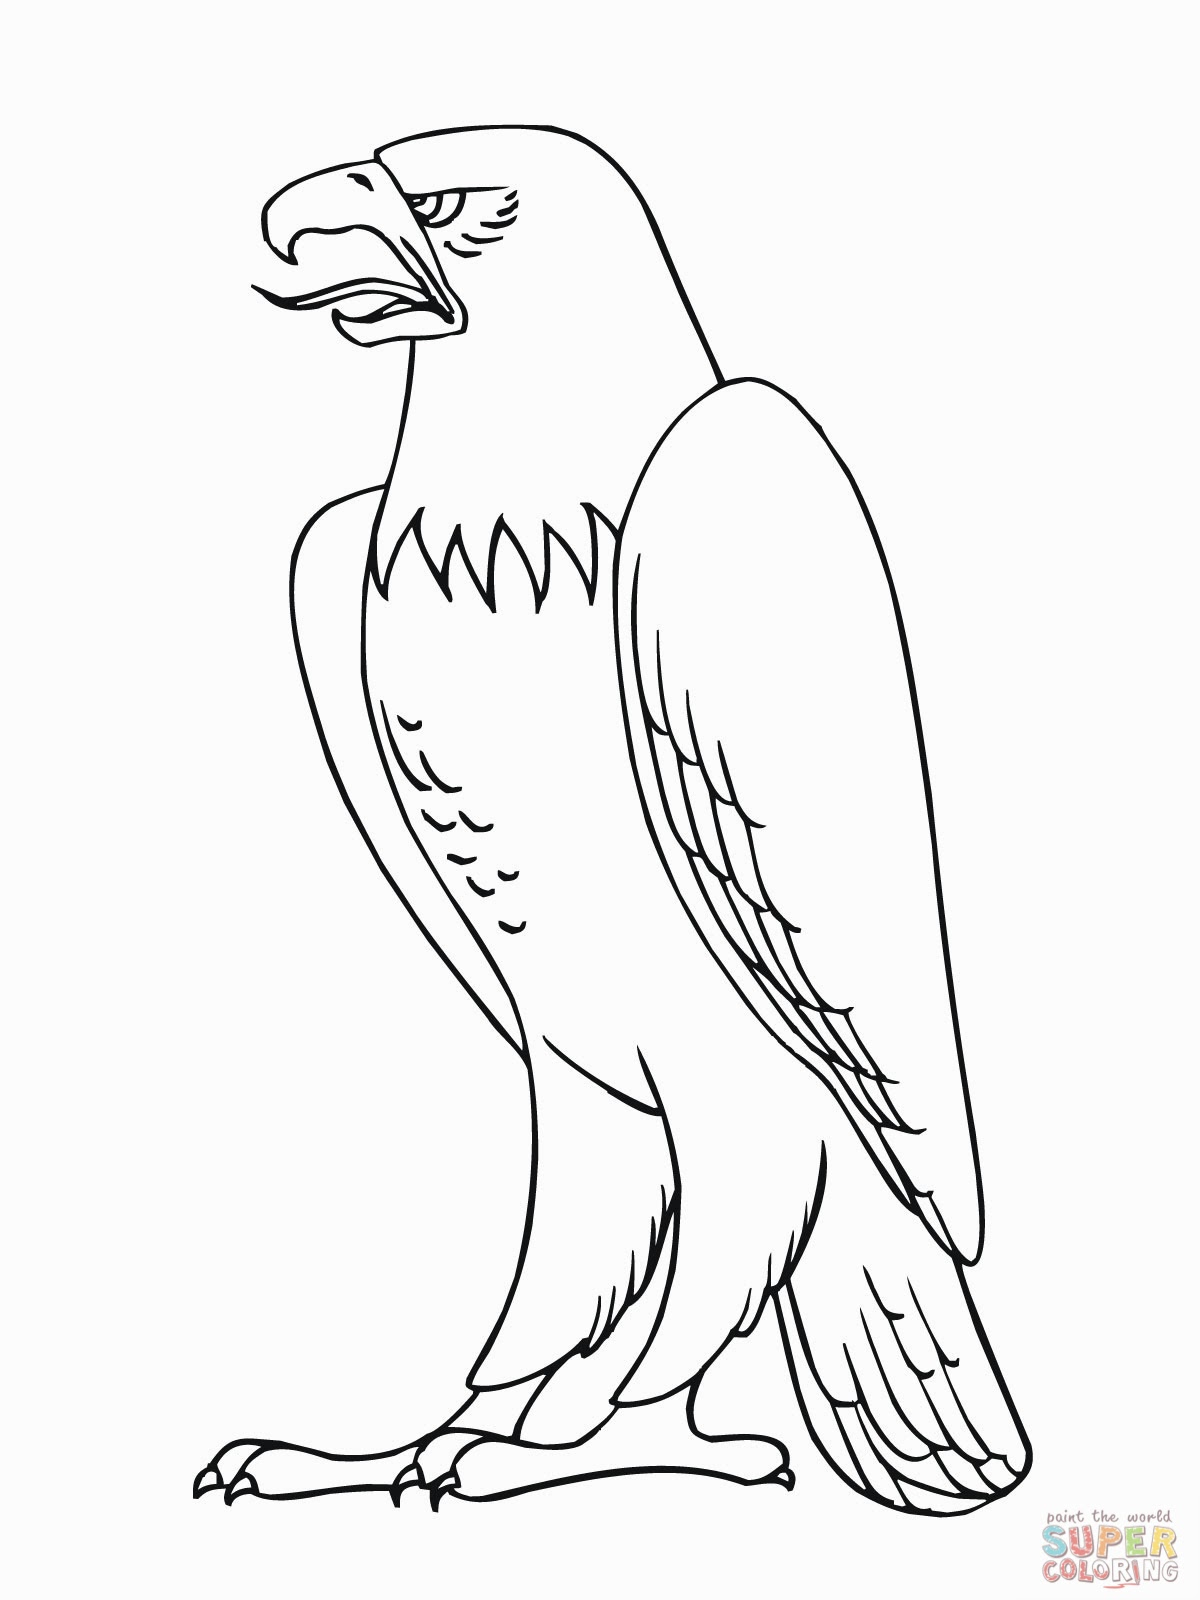 coloring pages of bald eagles bald eagle of the mountain coloring page netart pages bald coloring of eagles